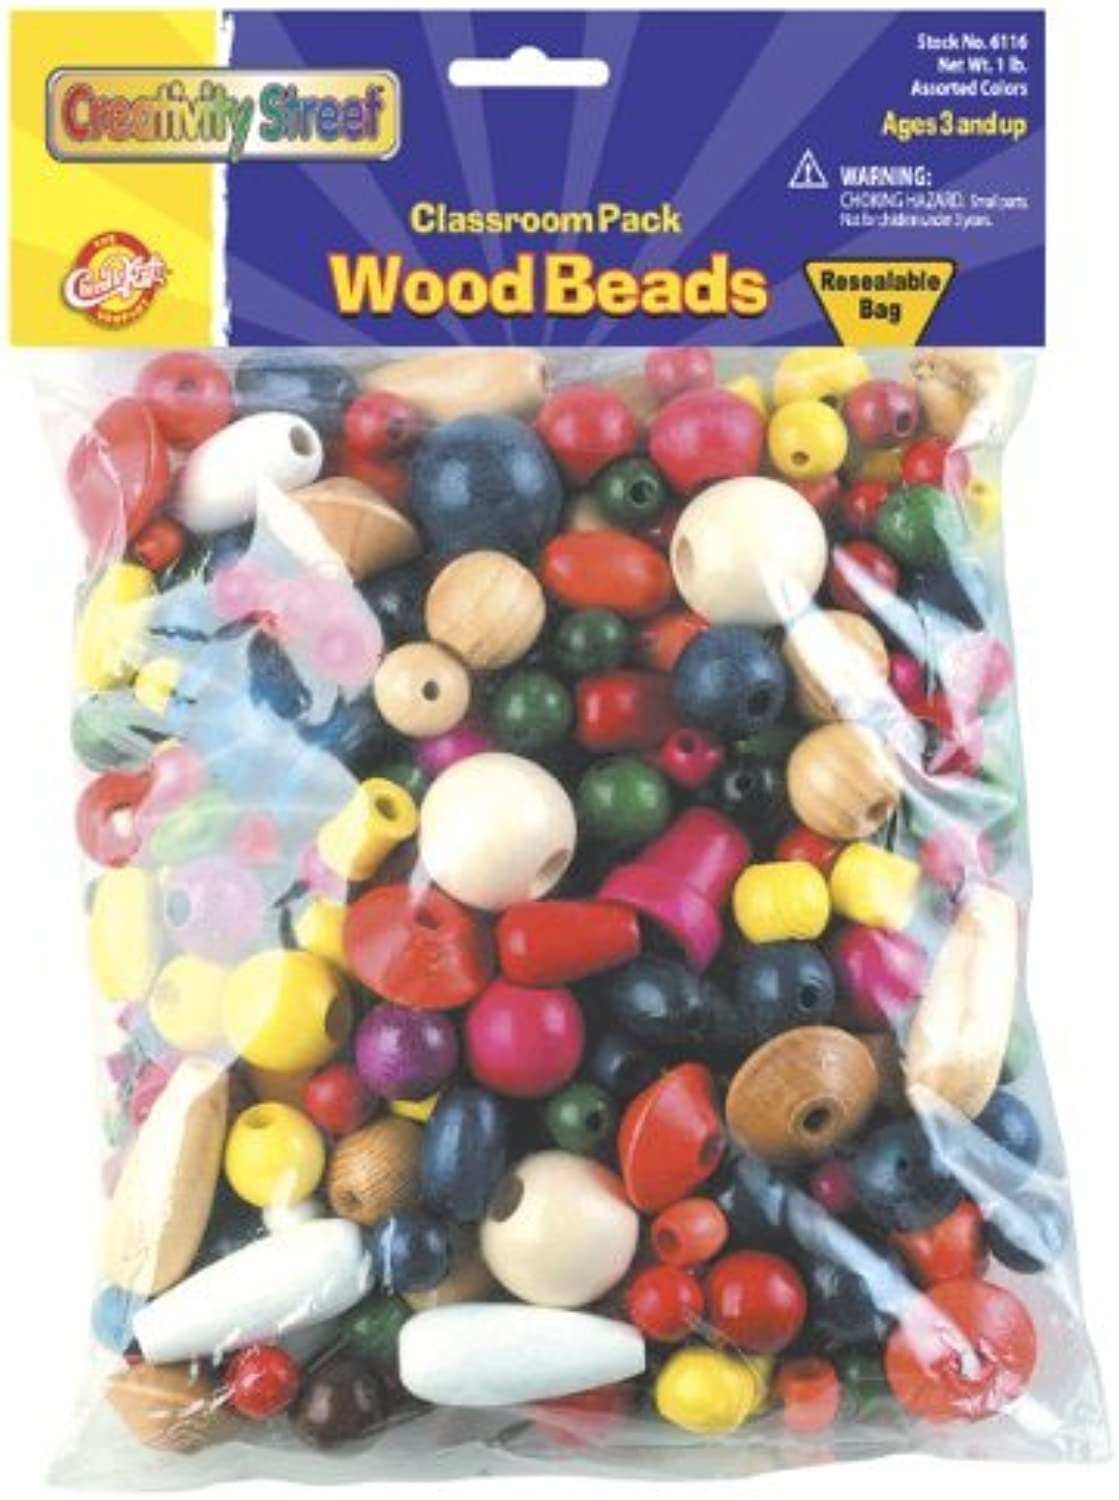 Big Bag of Wood Beads by Chenille Kraft